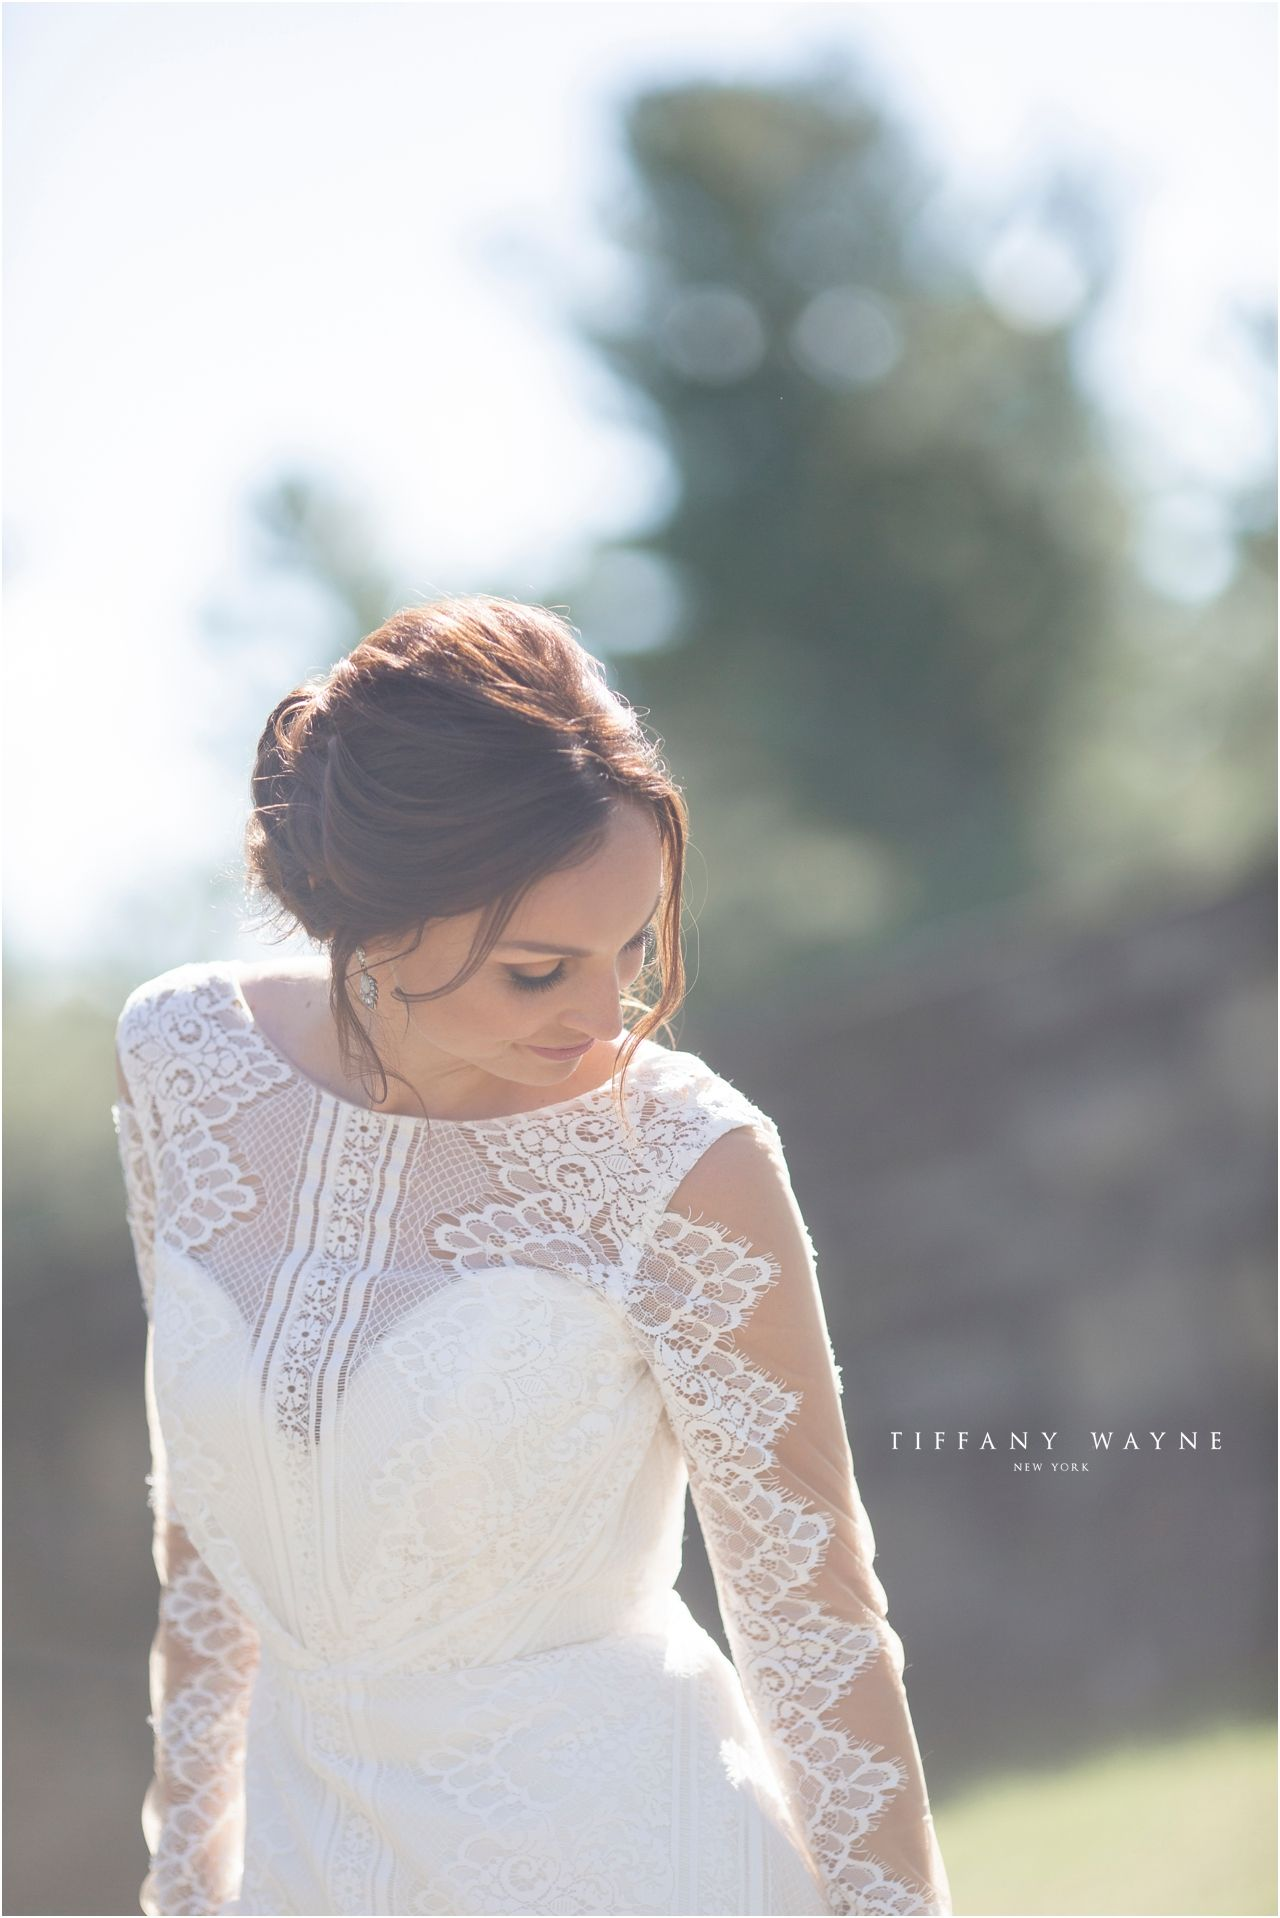 Natural bridal makeup outdoor wedding portrait light and airy